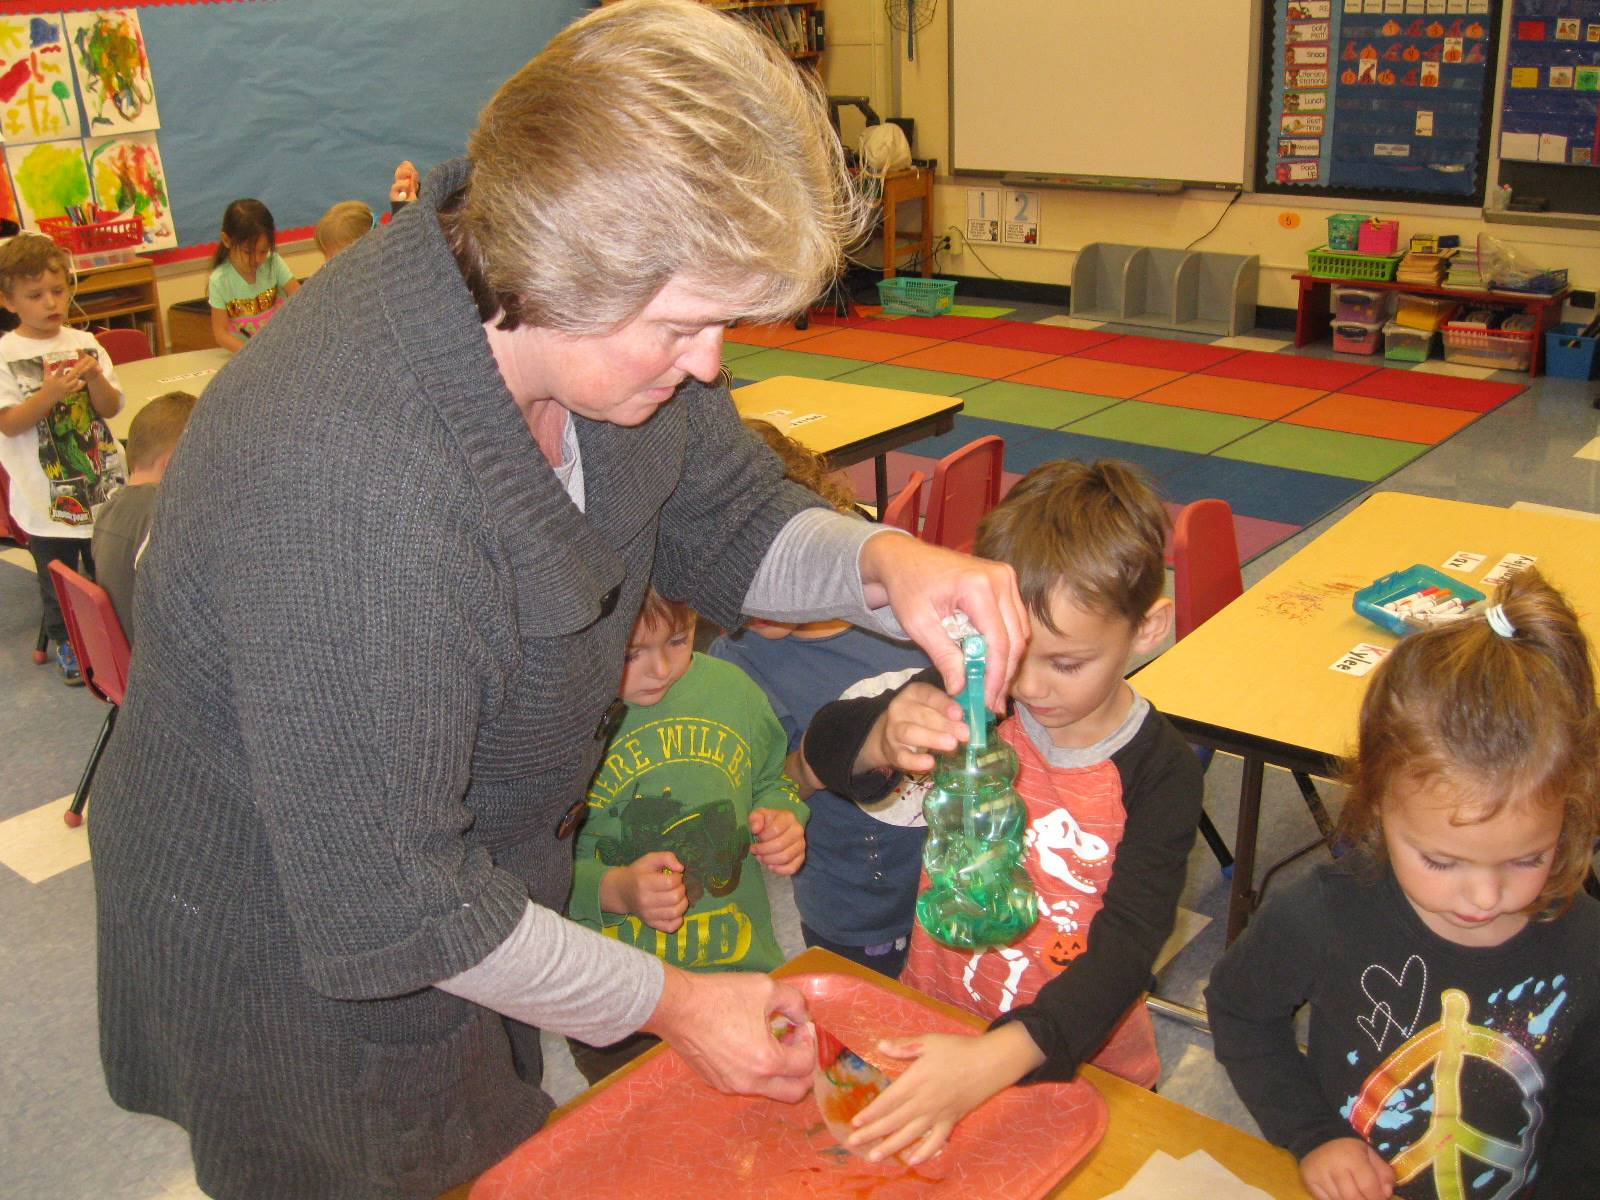 A staff member helps students.